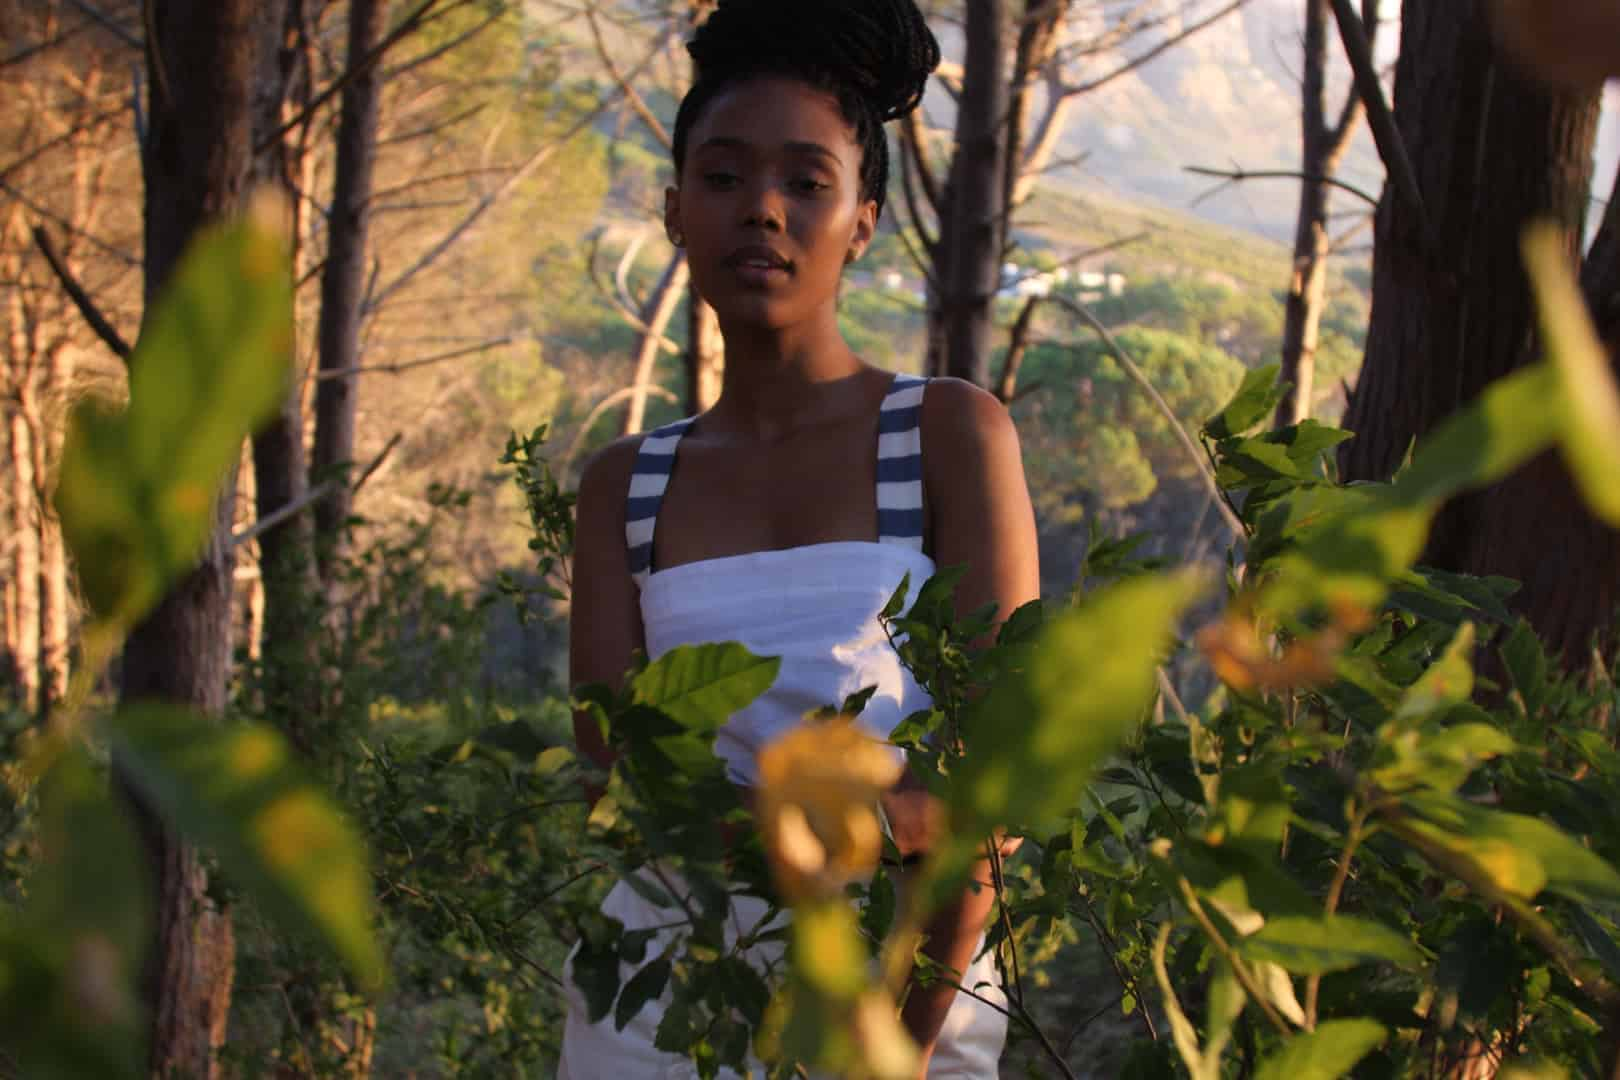 African model with dread braids hairstyle standing in a forest behind trees in the sunset wearing a white bandeau top with striped straps